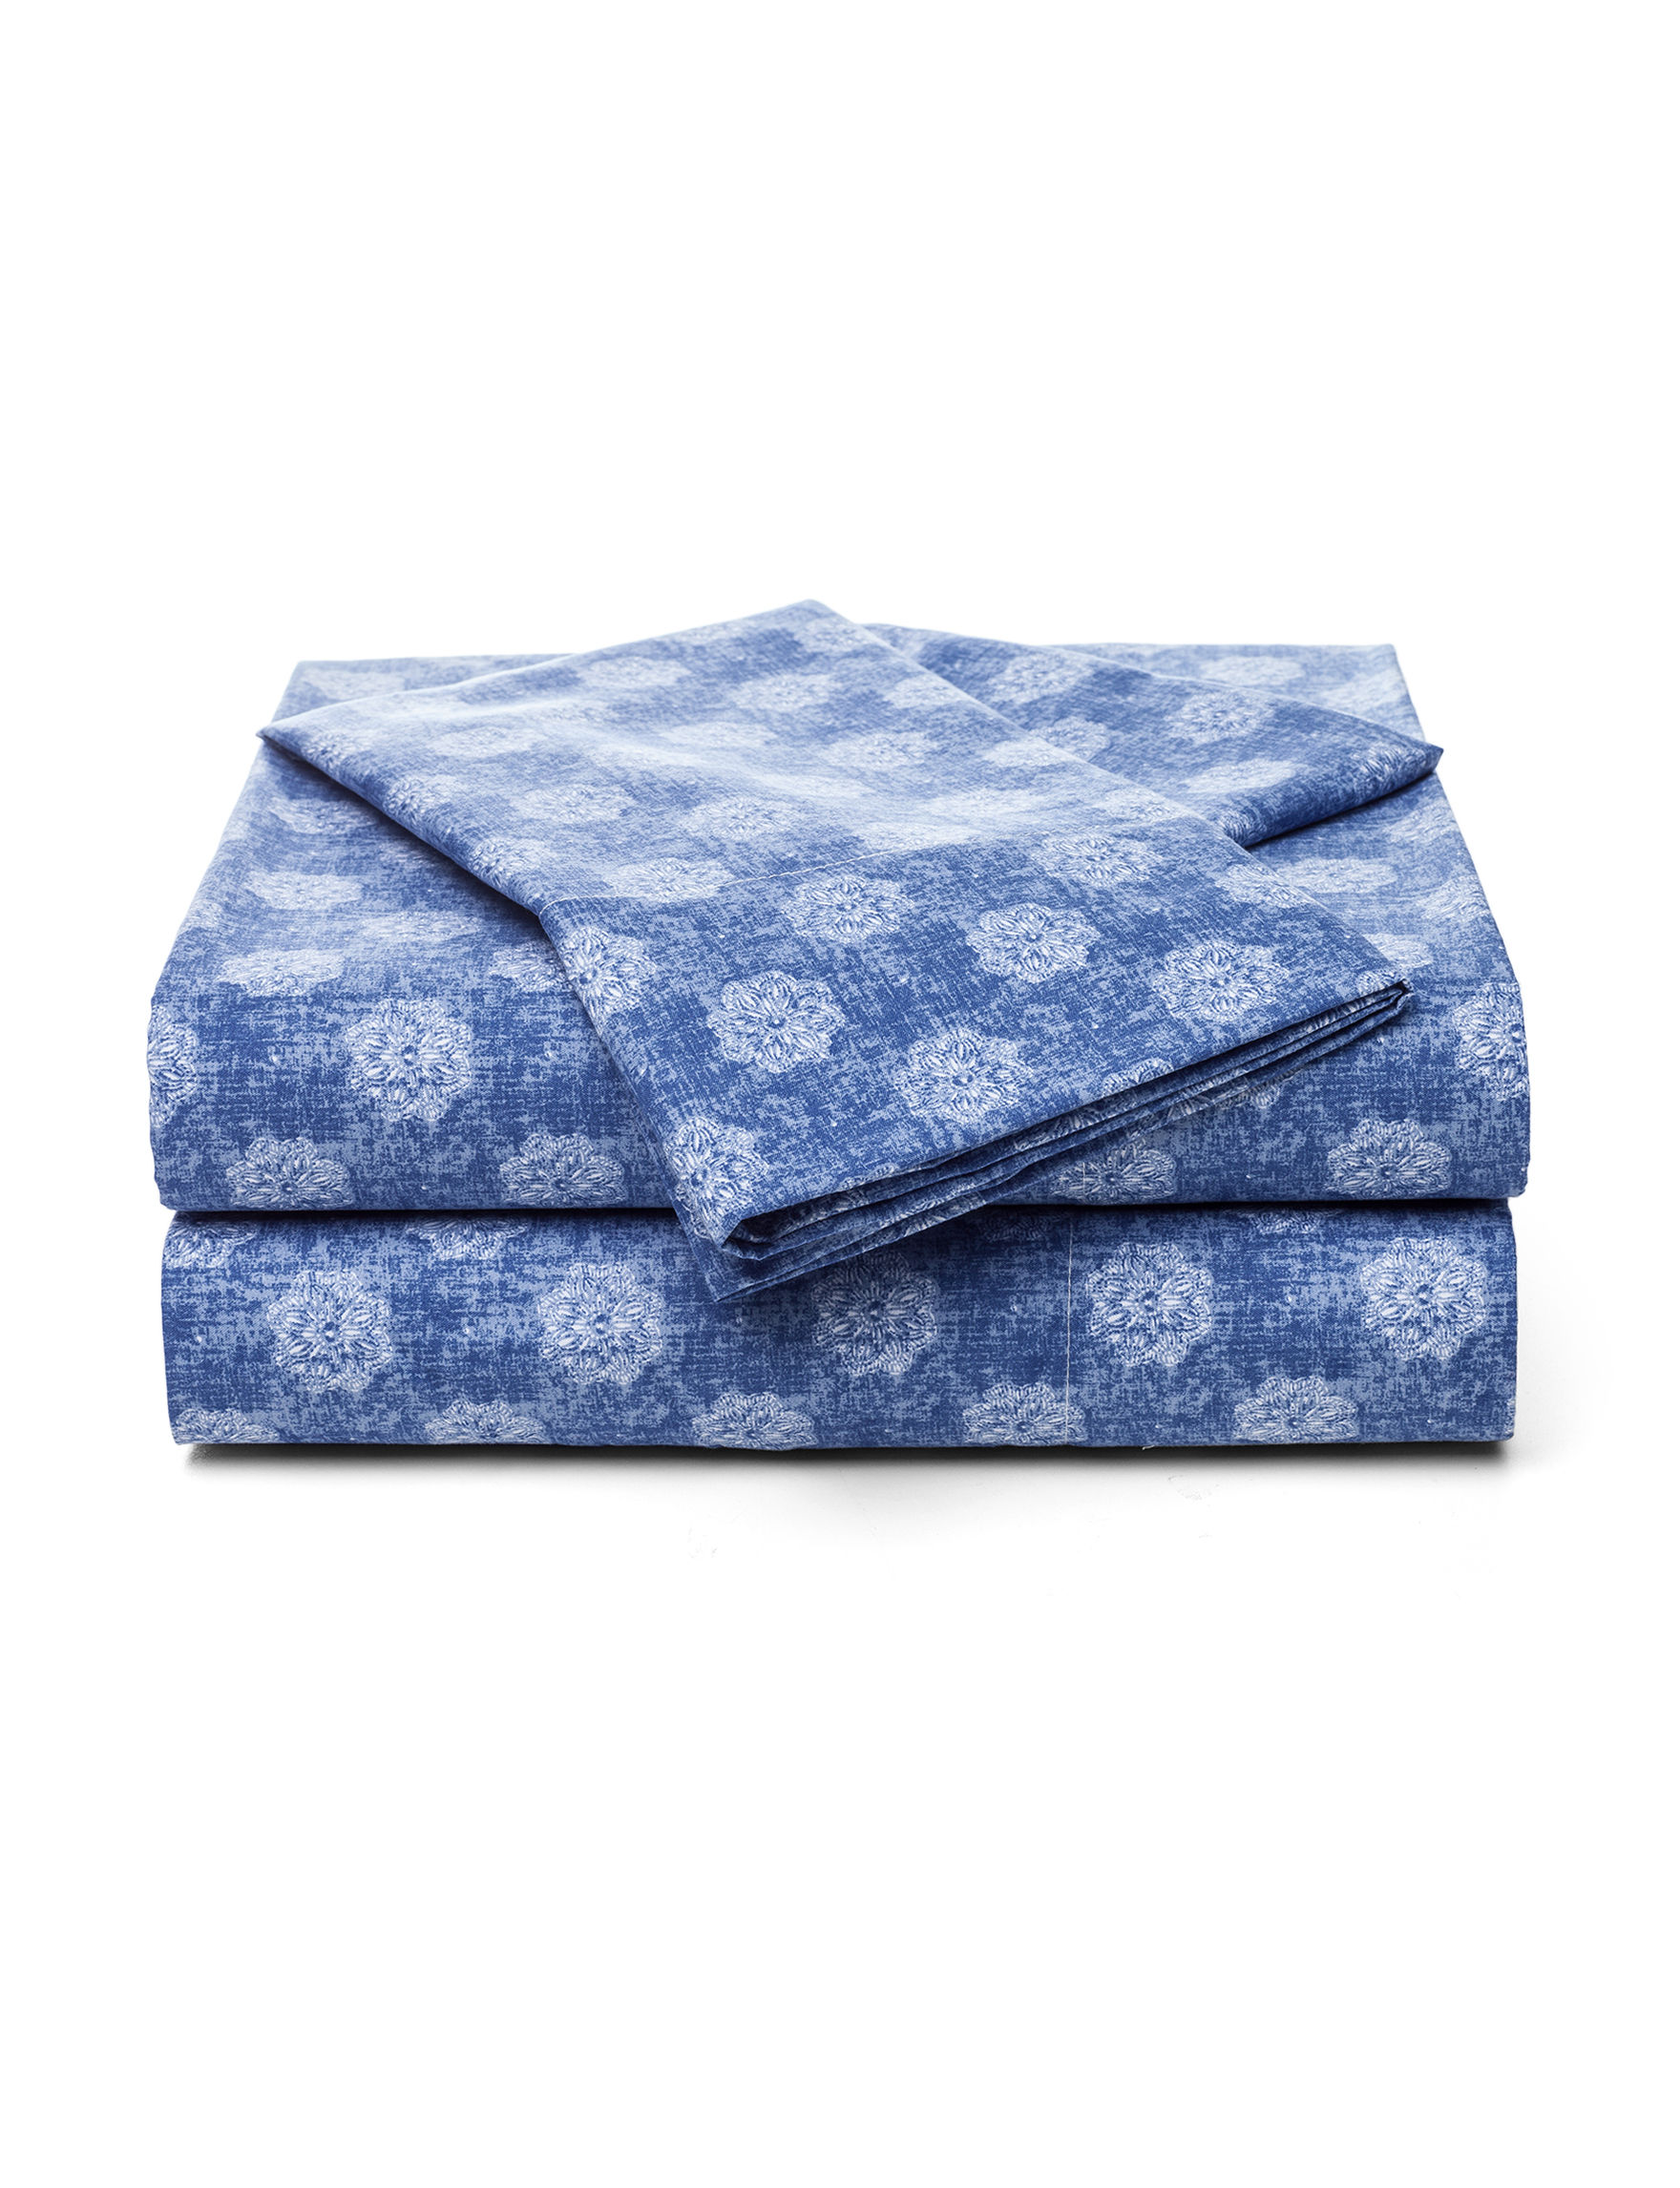 Great Hotels Collection Blue Sheets & Pillowcases